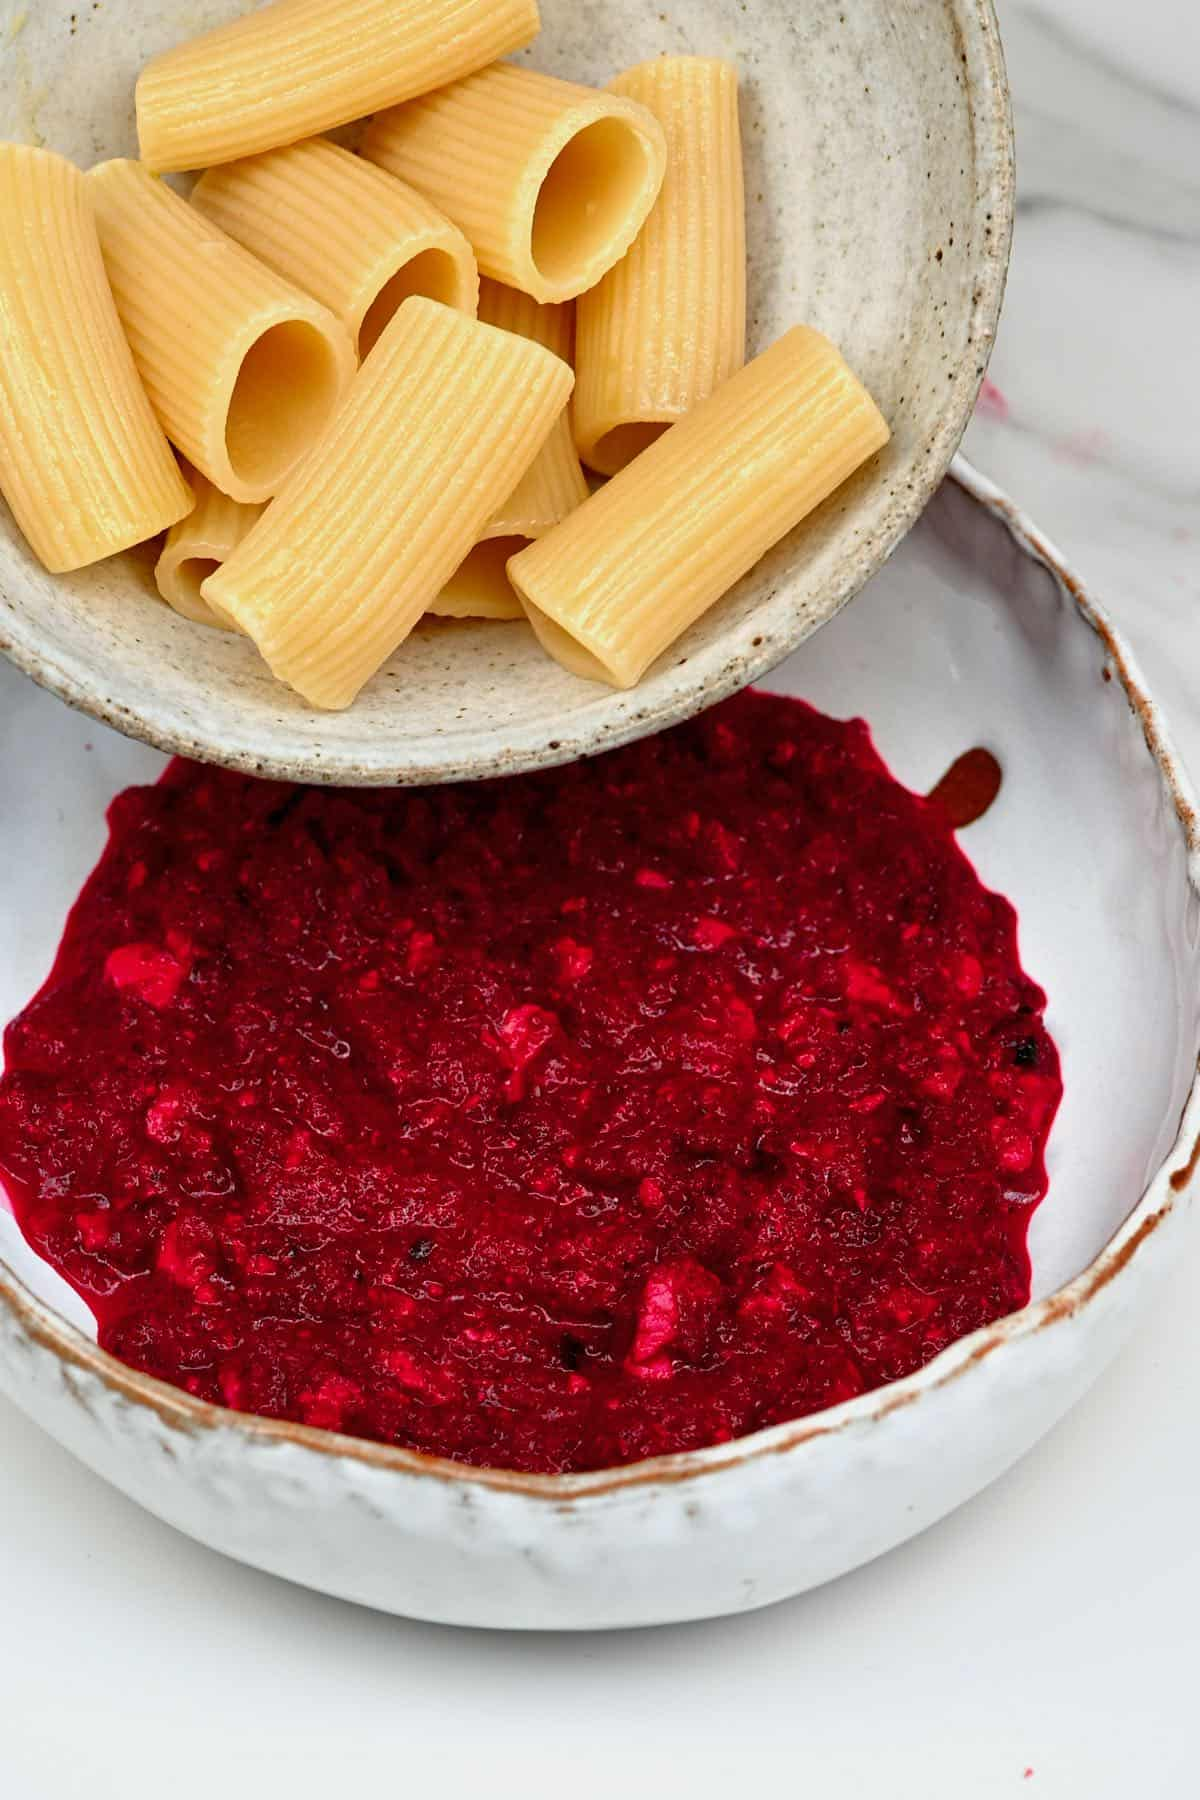 Mixing cooked pasta into beetroot pasta sauce